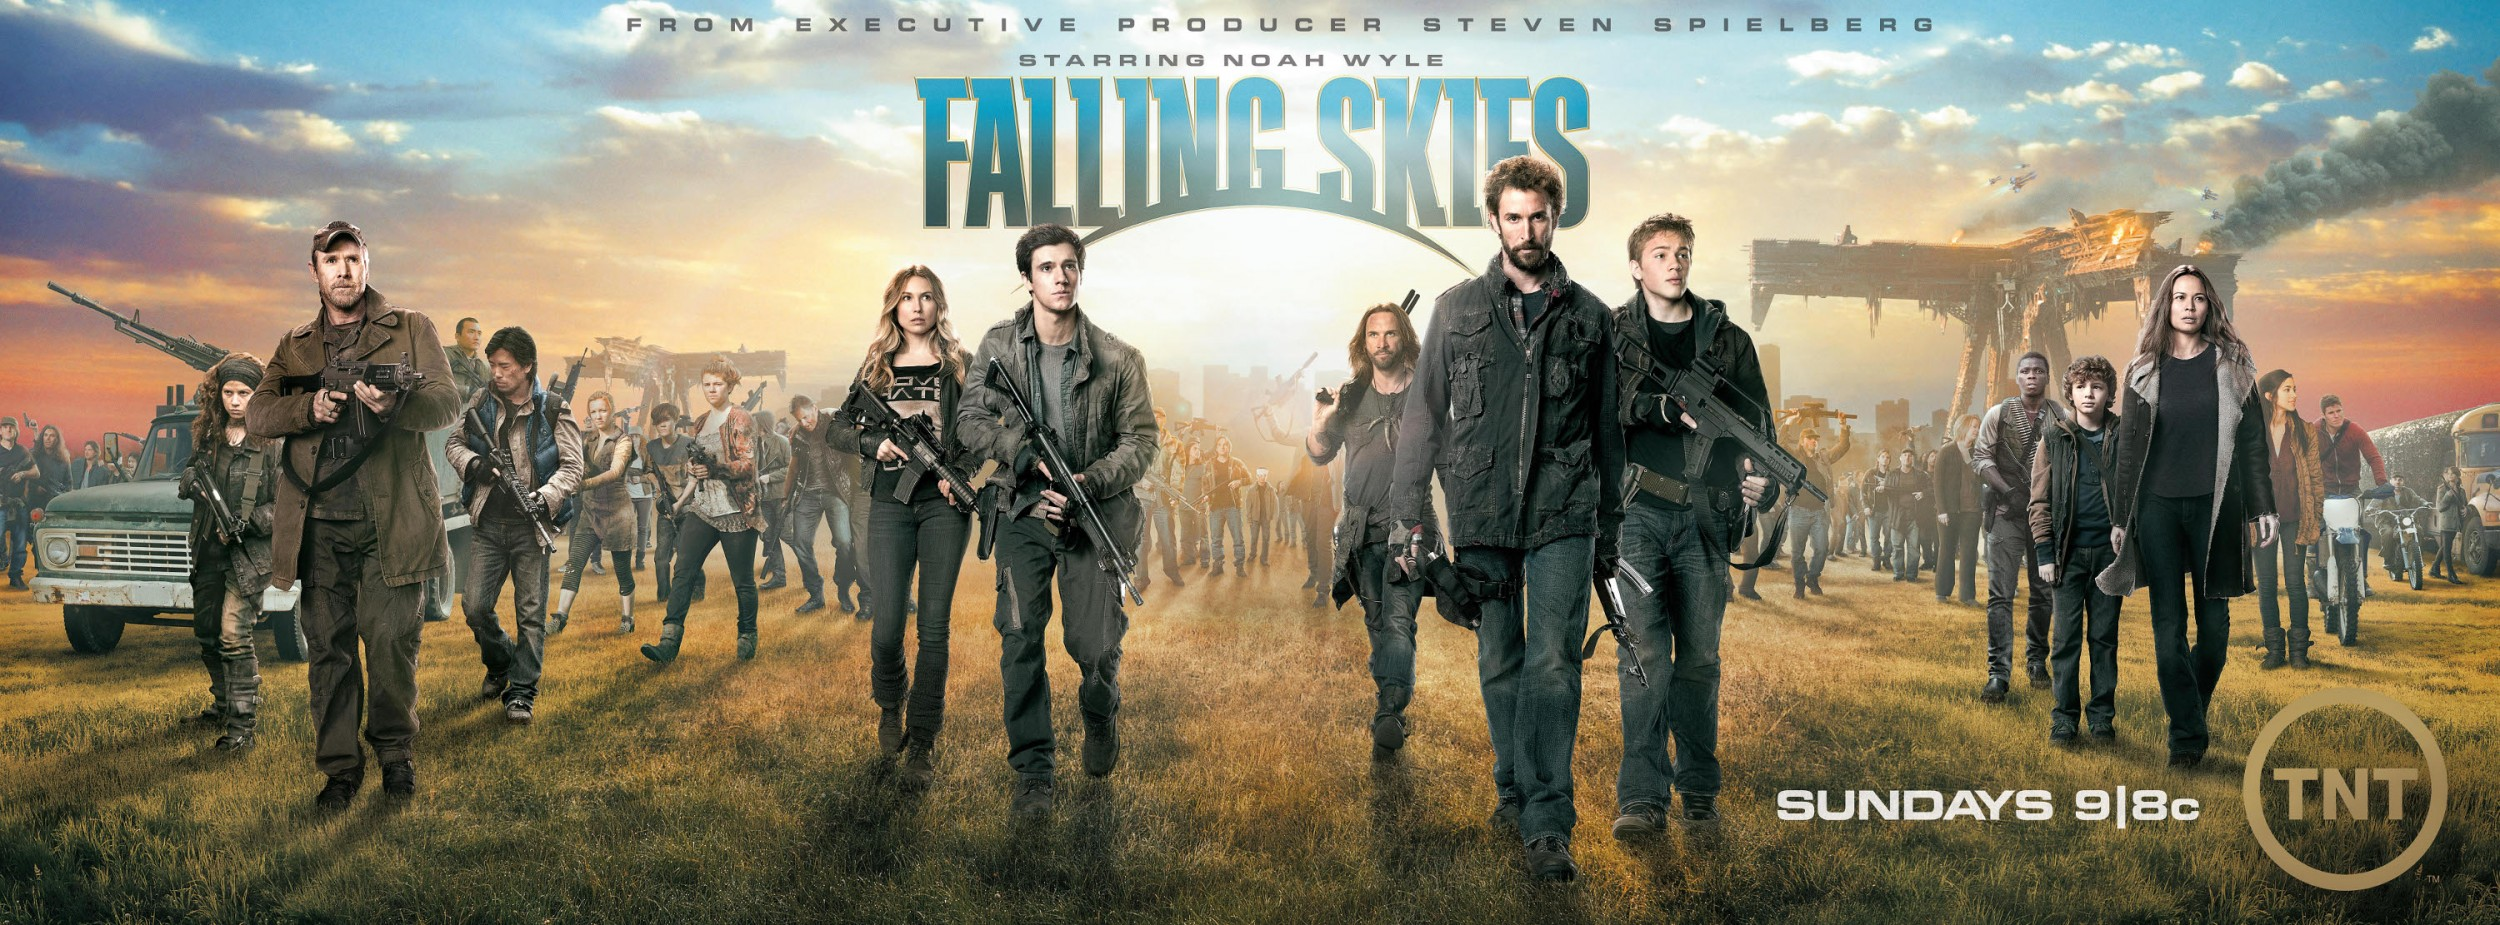 http://images.critictoo.com/wp-content/uploads/2012/05/Falling-Skies-Saison-2-Poster-2.jpg